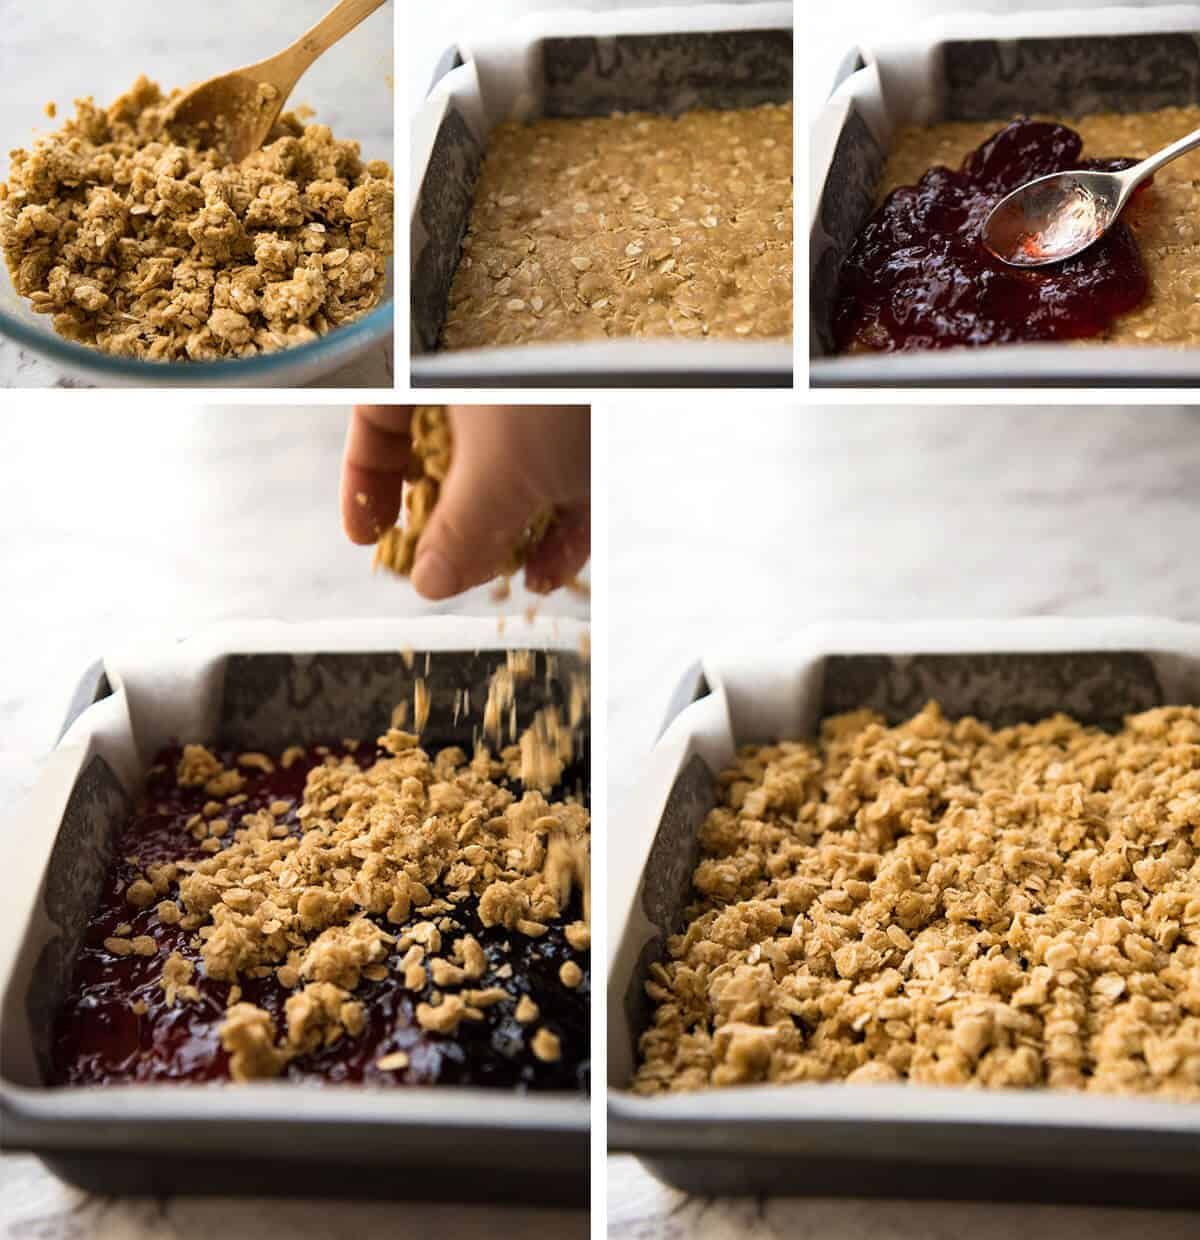 How to make Raspberry Bars www.recipetineats.com